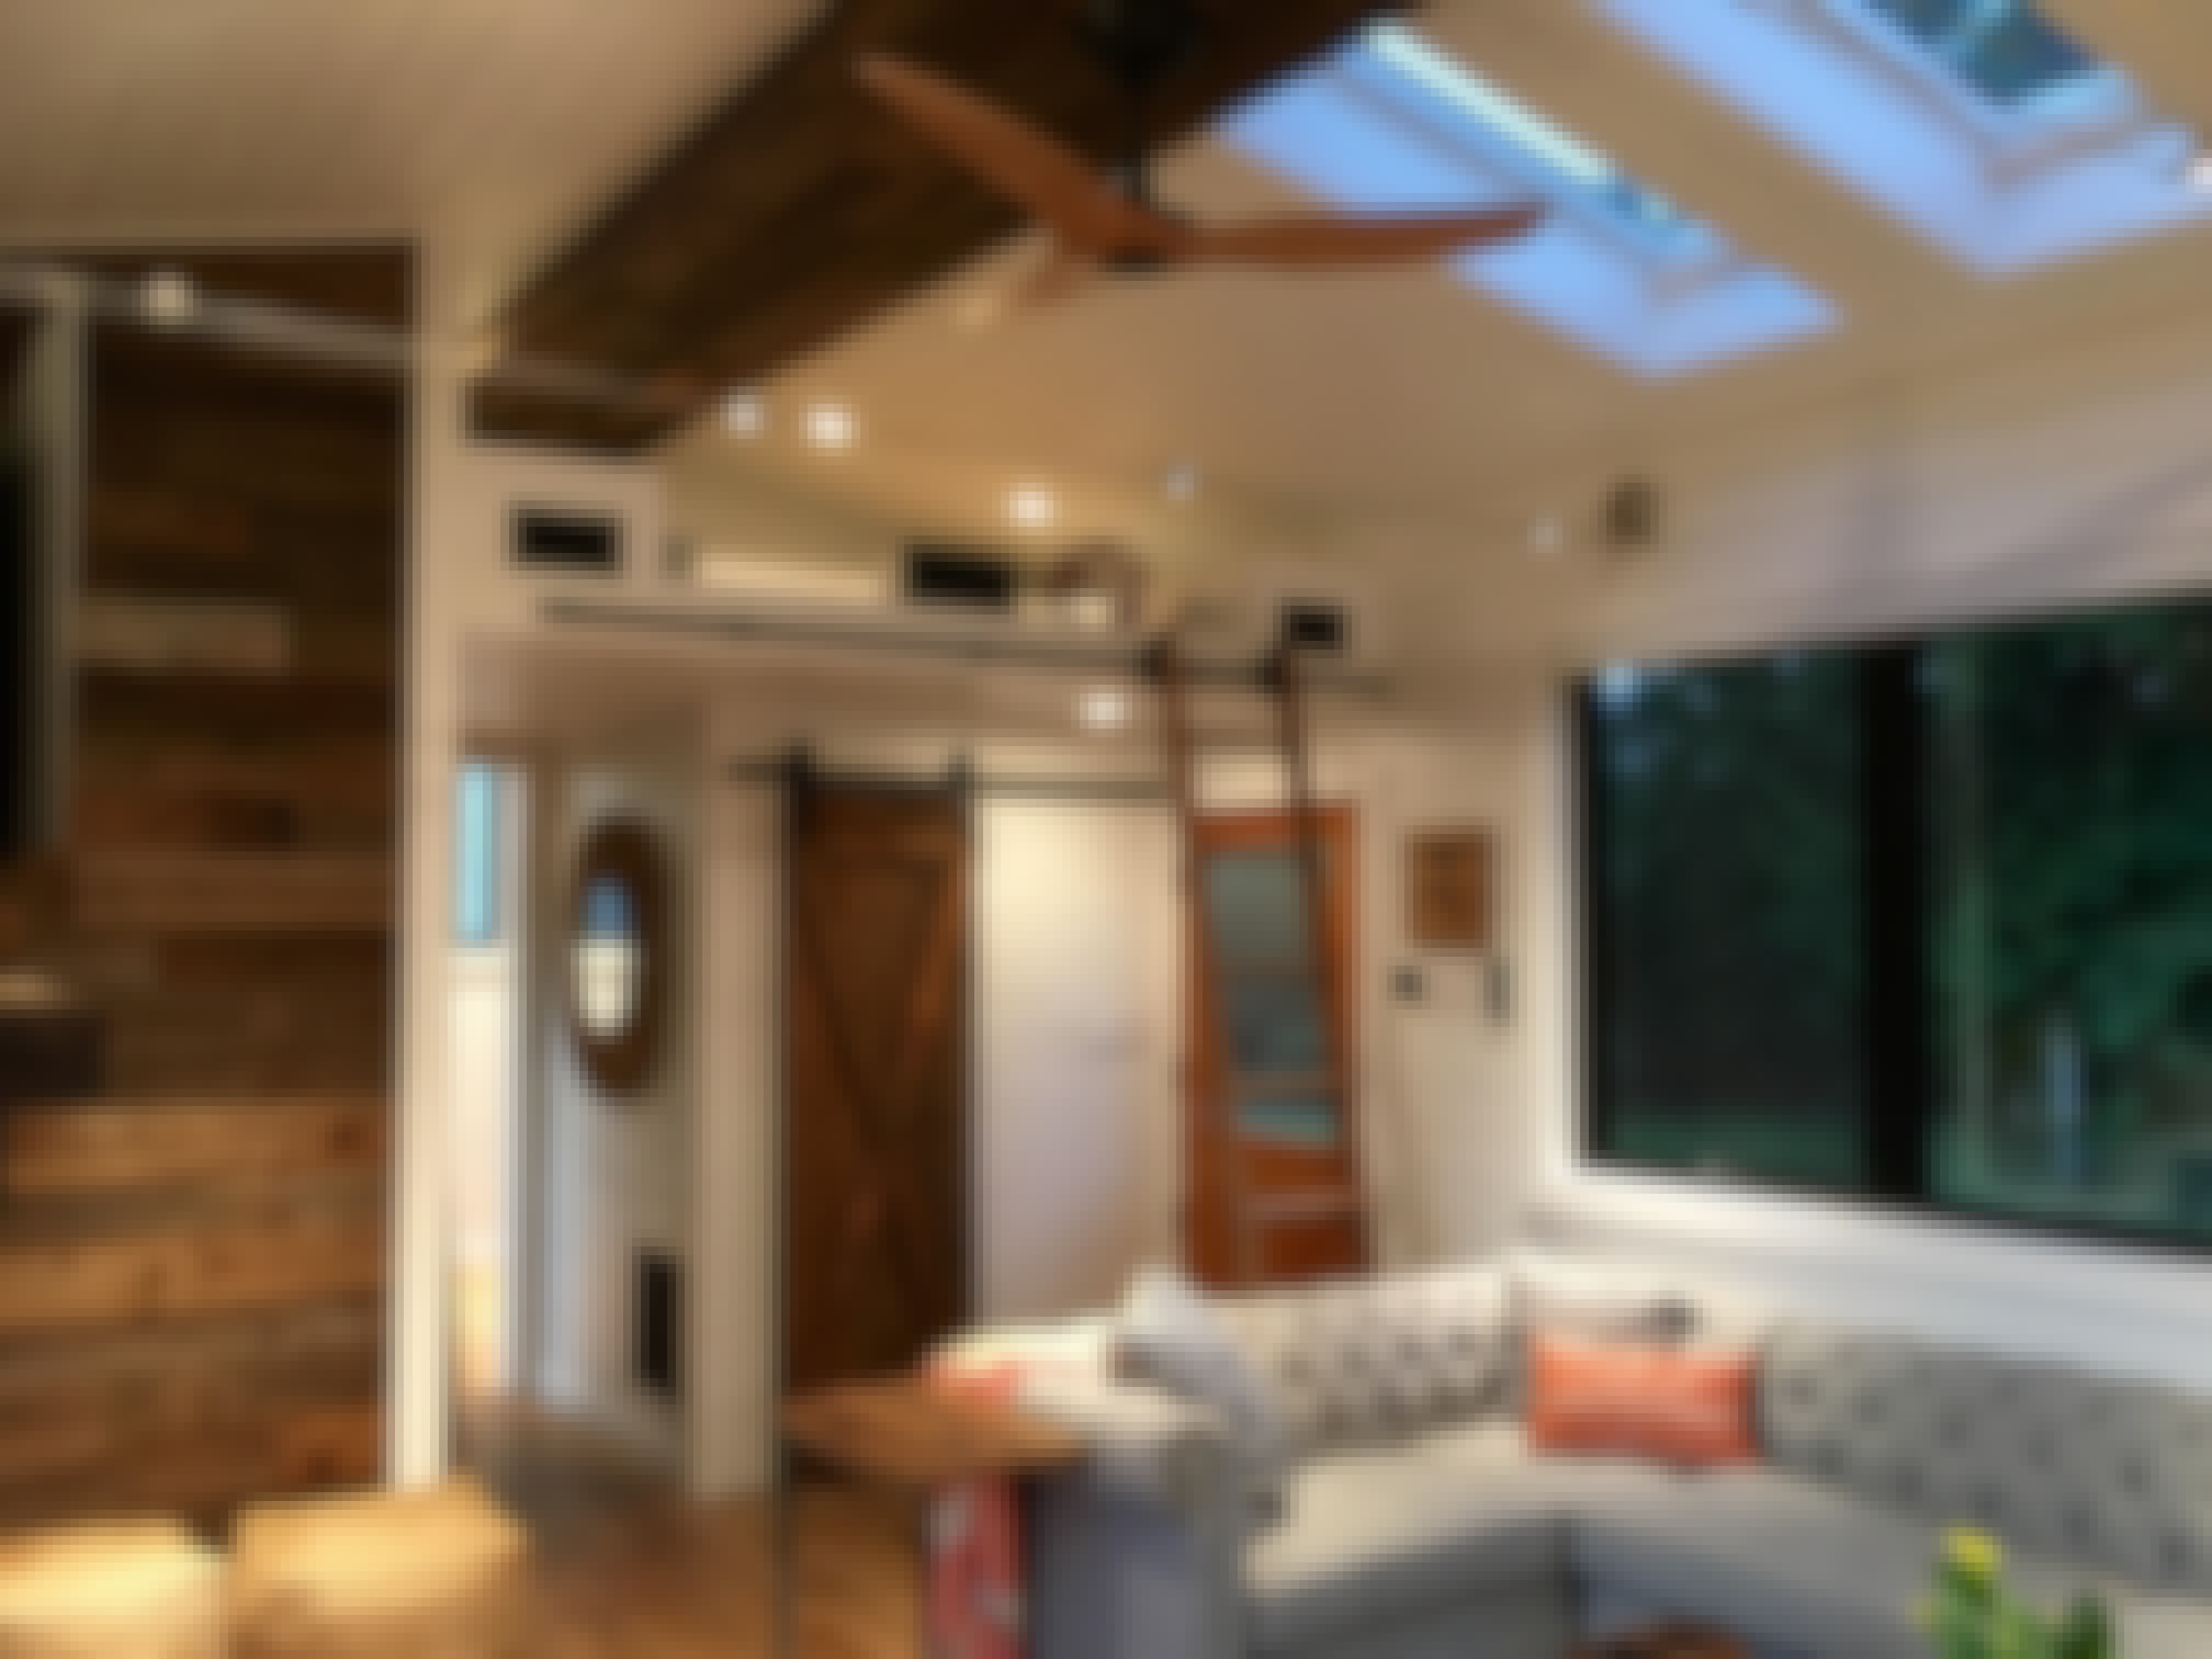 The living room inside Shawn and Shelly's tiny home in Maui